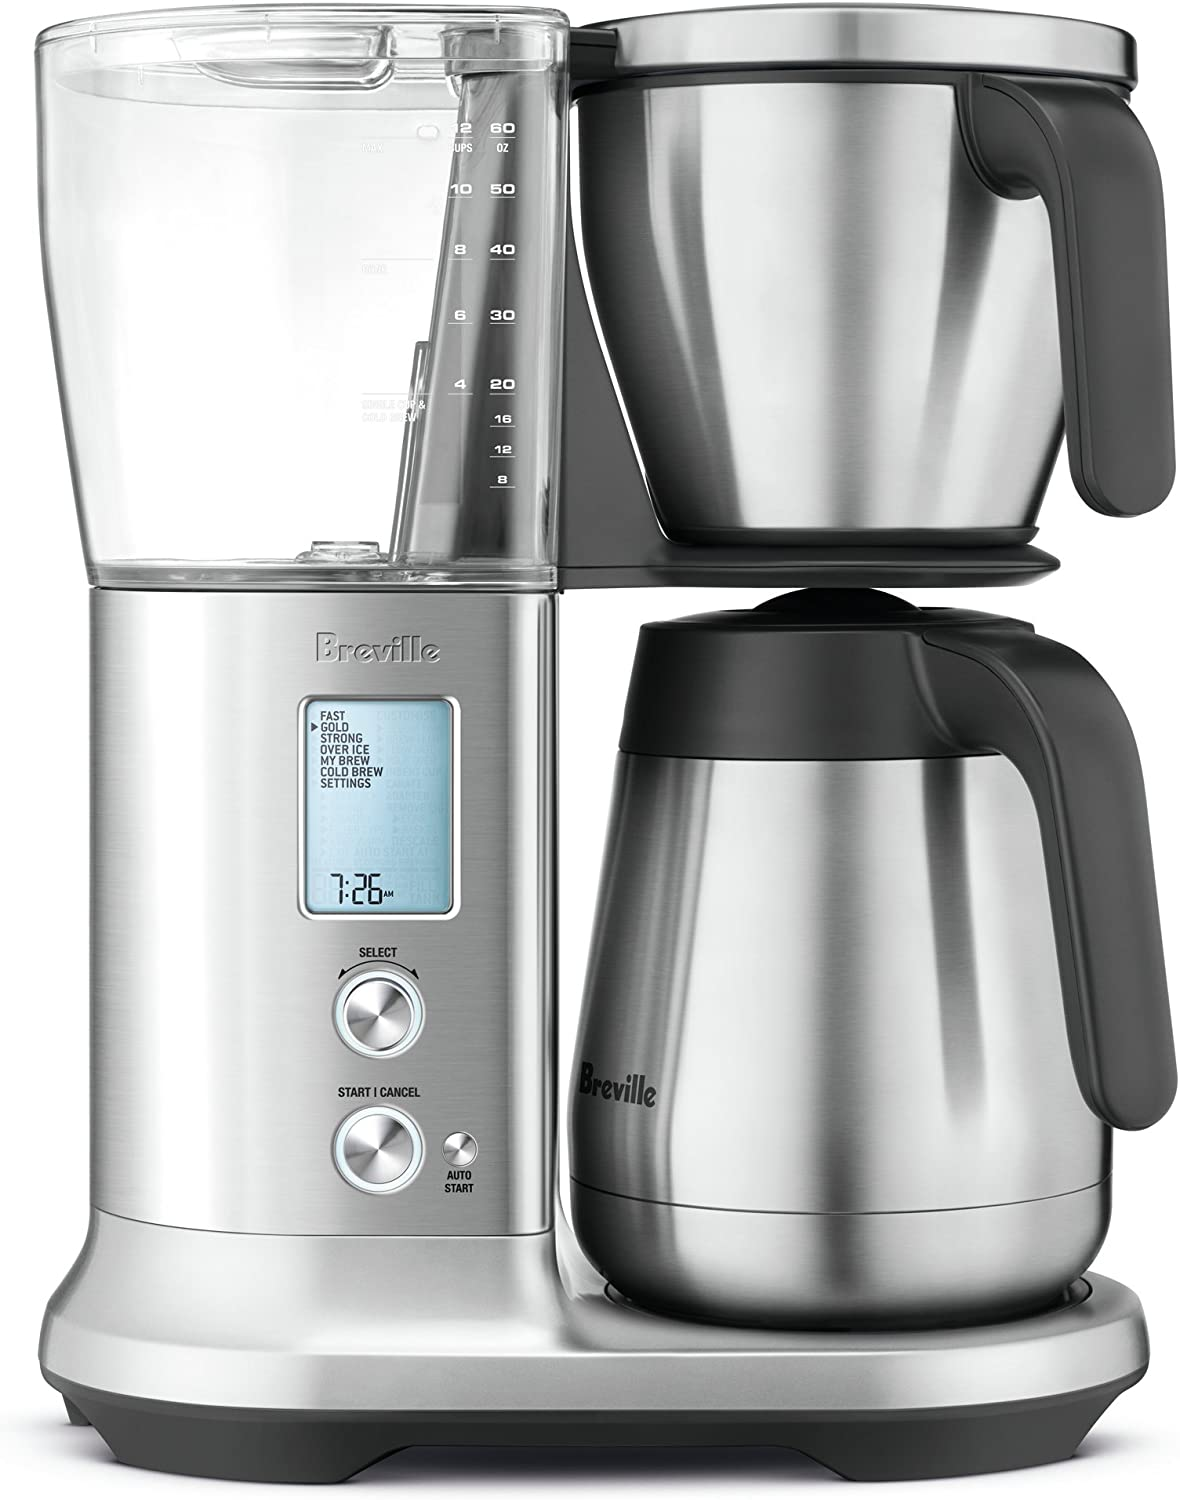 Breville BDC450BSS  Precision Brewer Coffee Maker  $239.95 Coupon